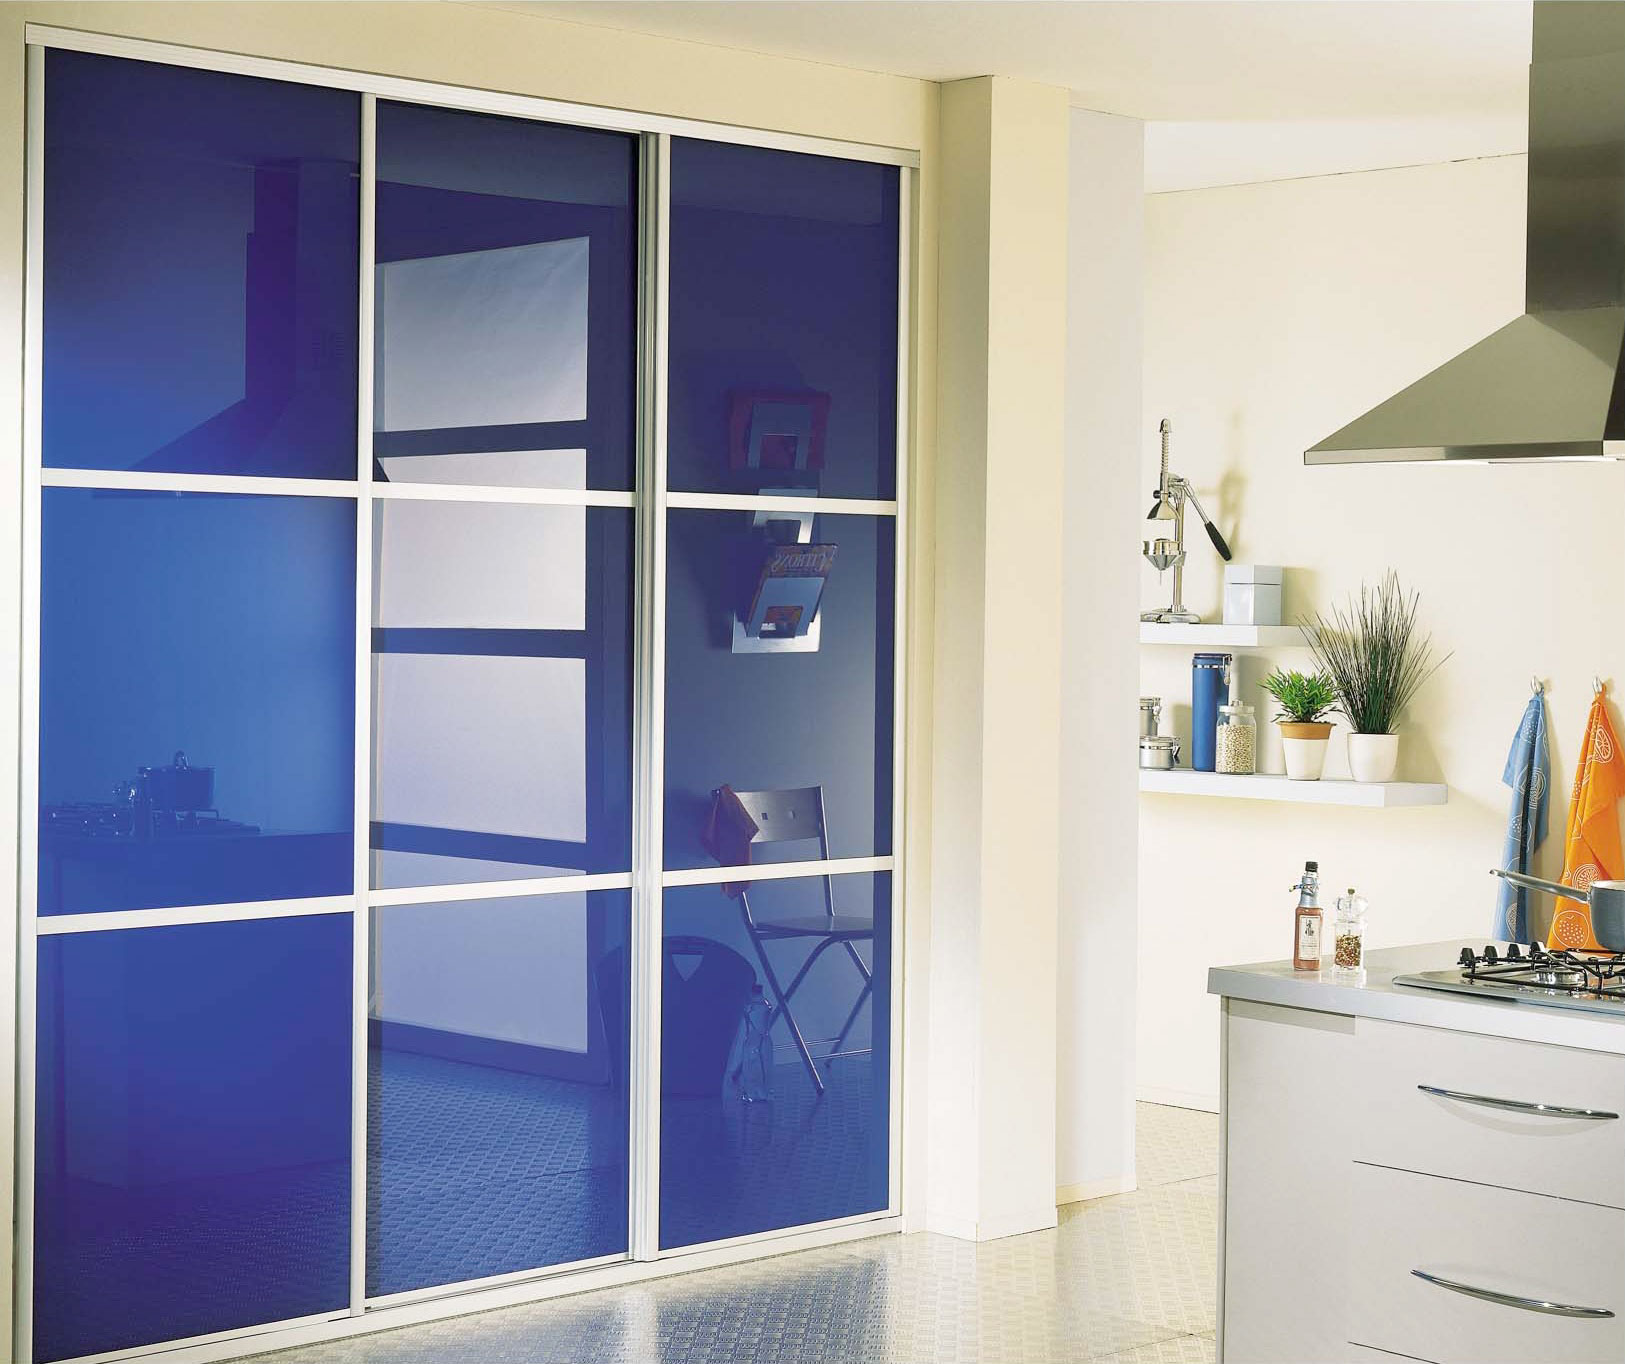 verre pour porte de cuisine. Black Bedroom Furniture Sets. Home Design Ideas